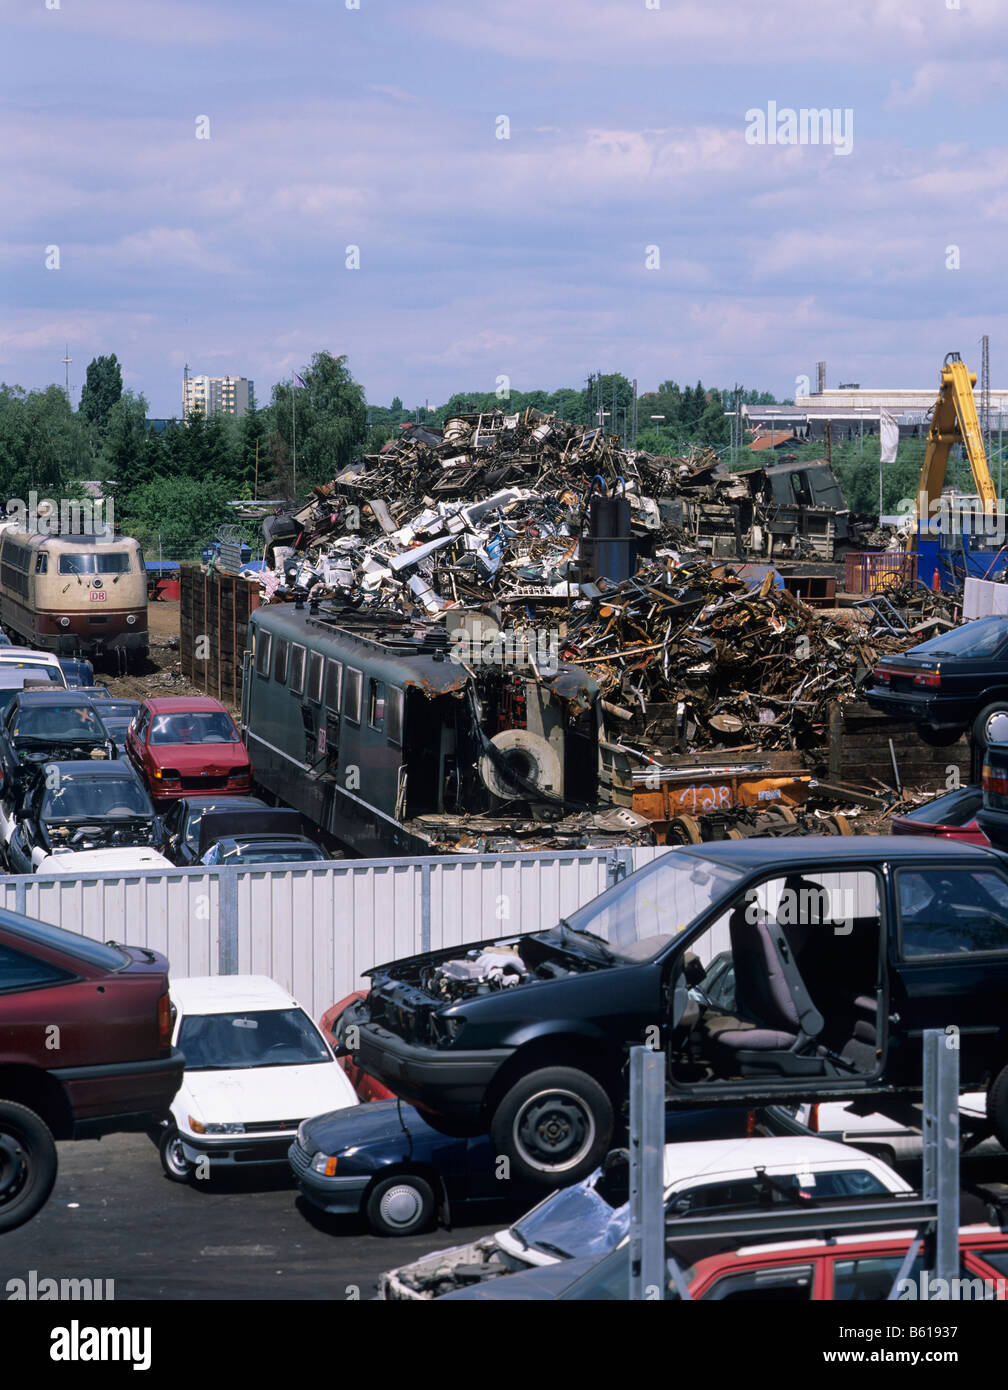 View of a scrapyard, car chassis, electric trains and old metal parts Stock Photo